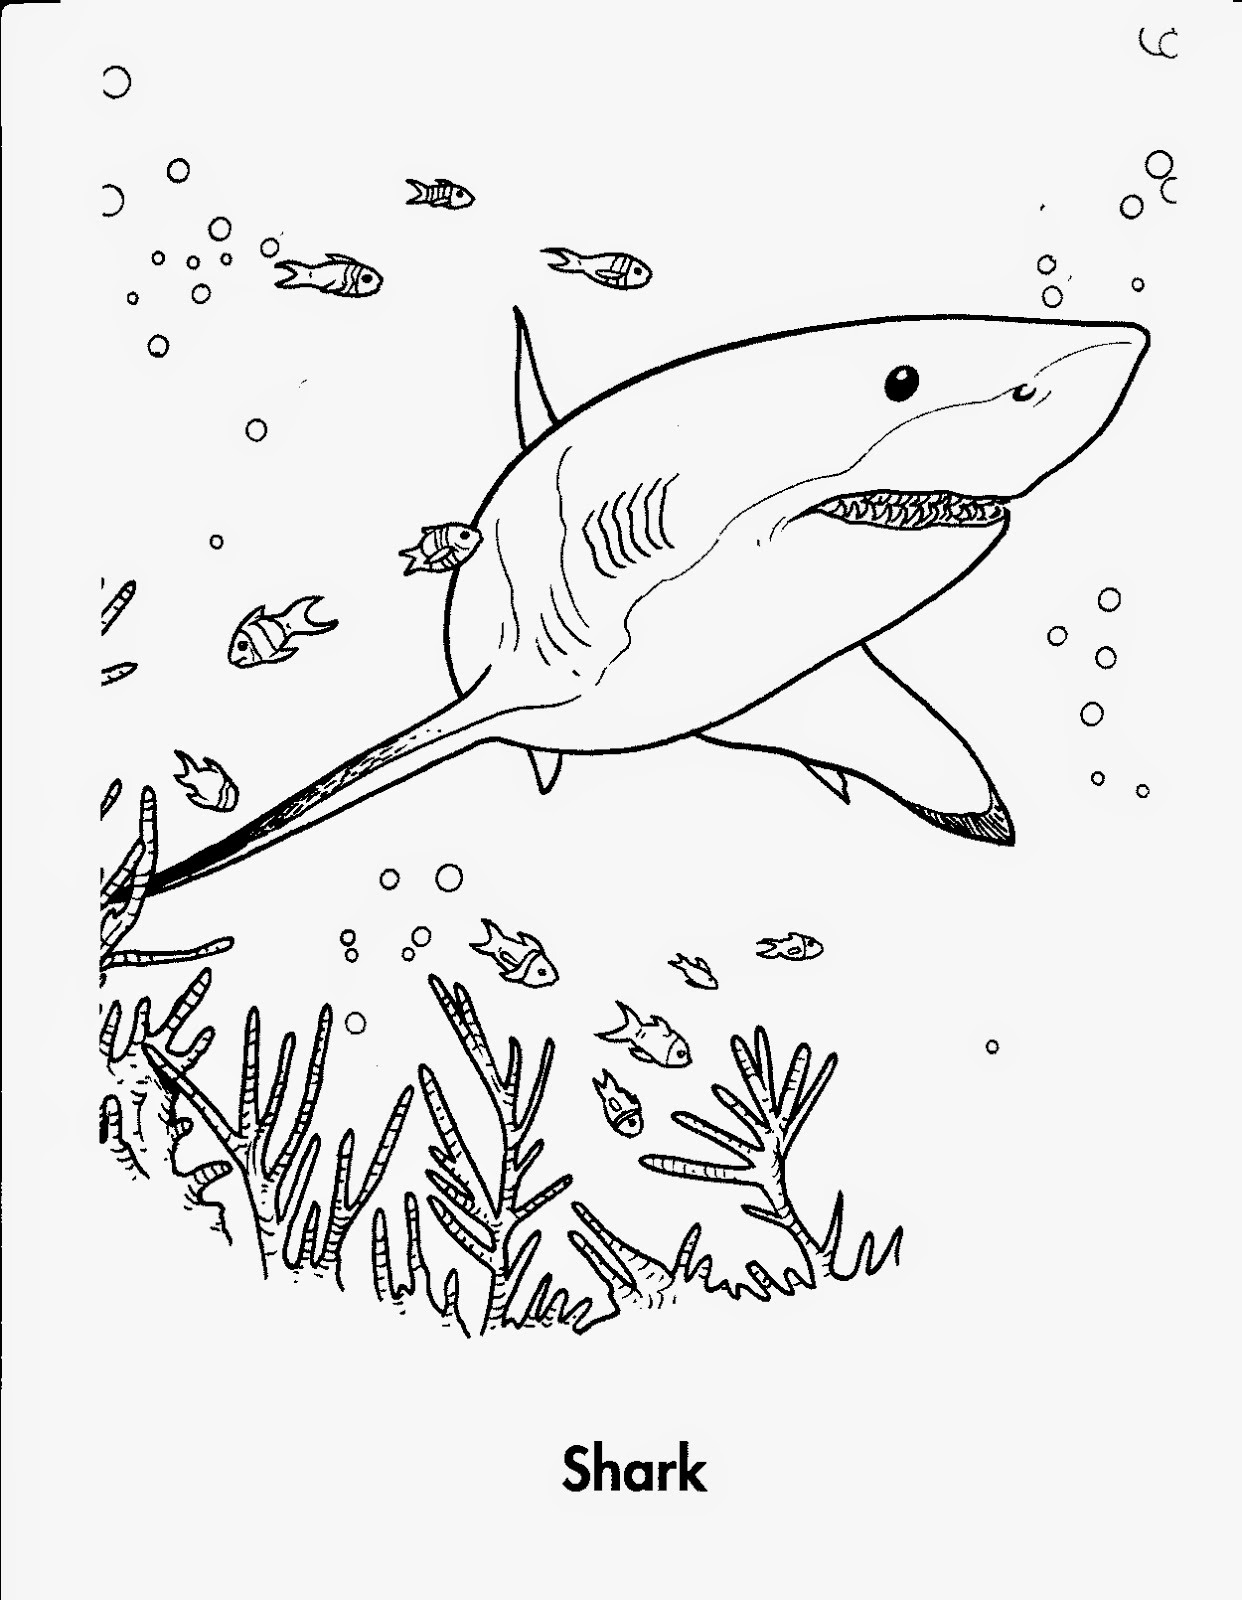 hammerhead shark coloring page - hammerhead shark skull coloring pages